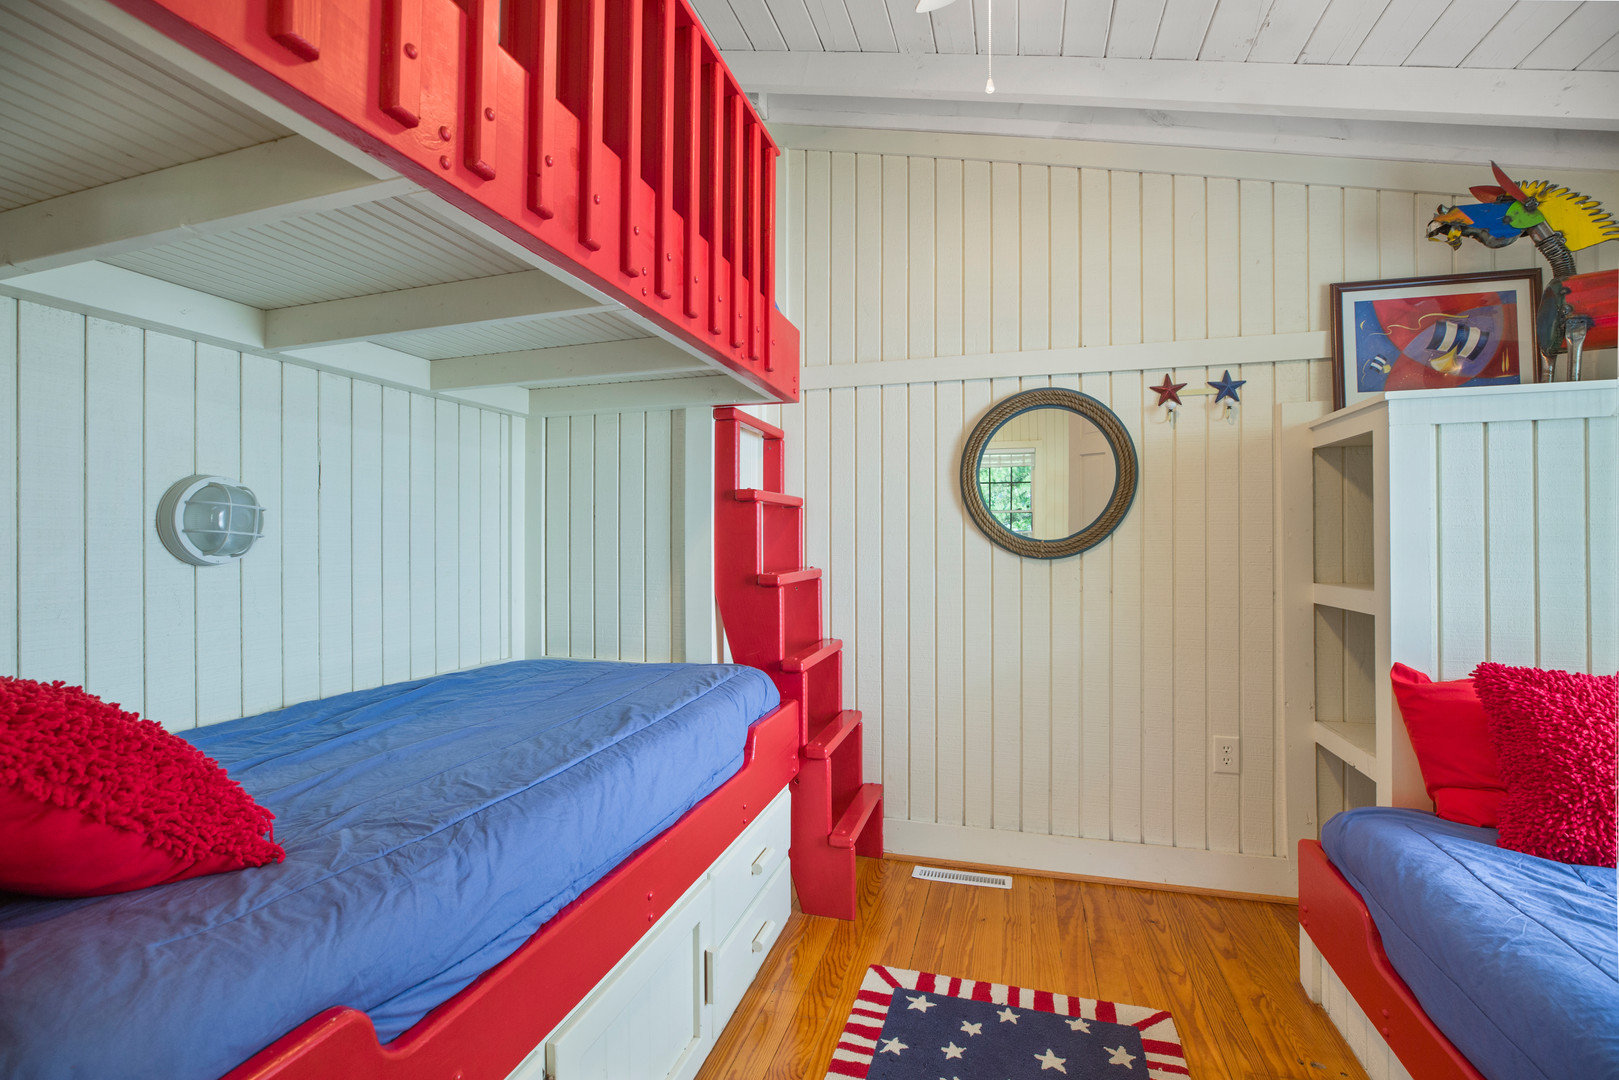 cottage_bedroom_bunks.jpg